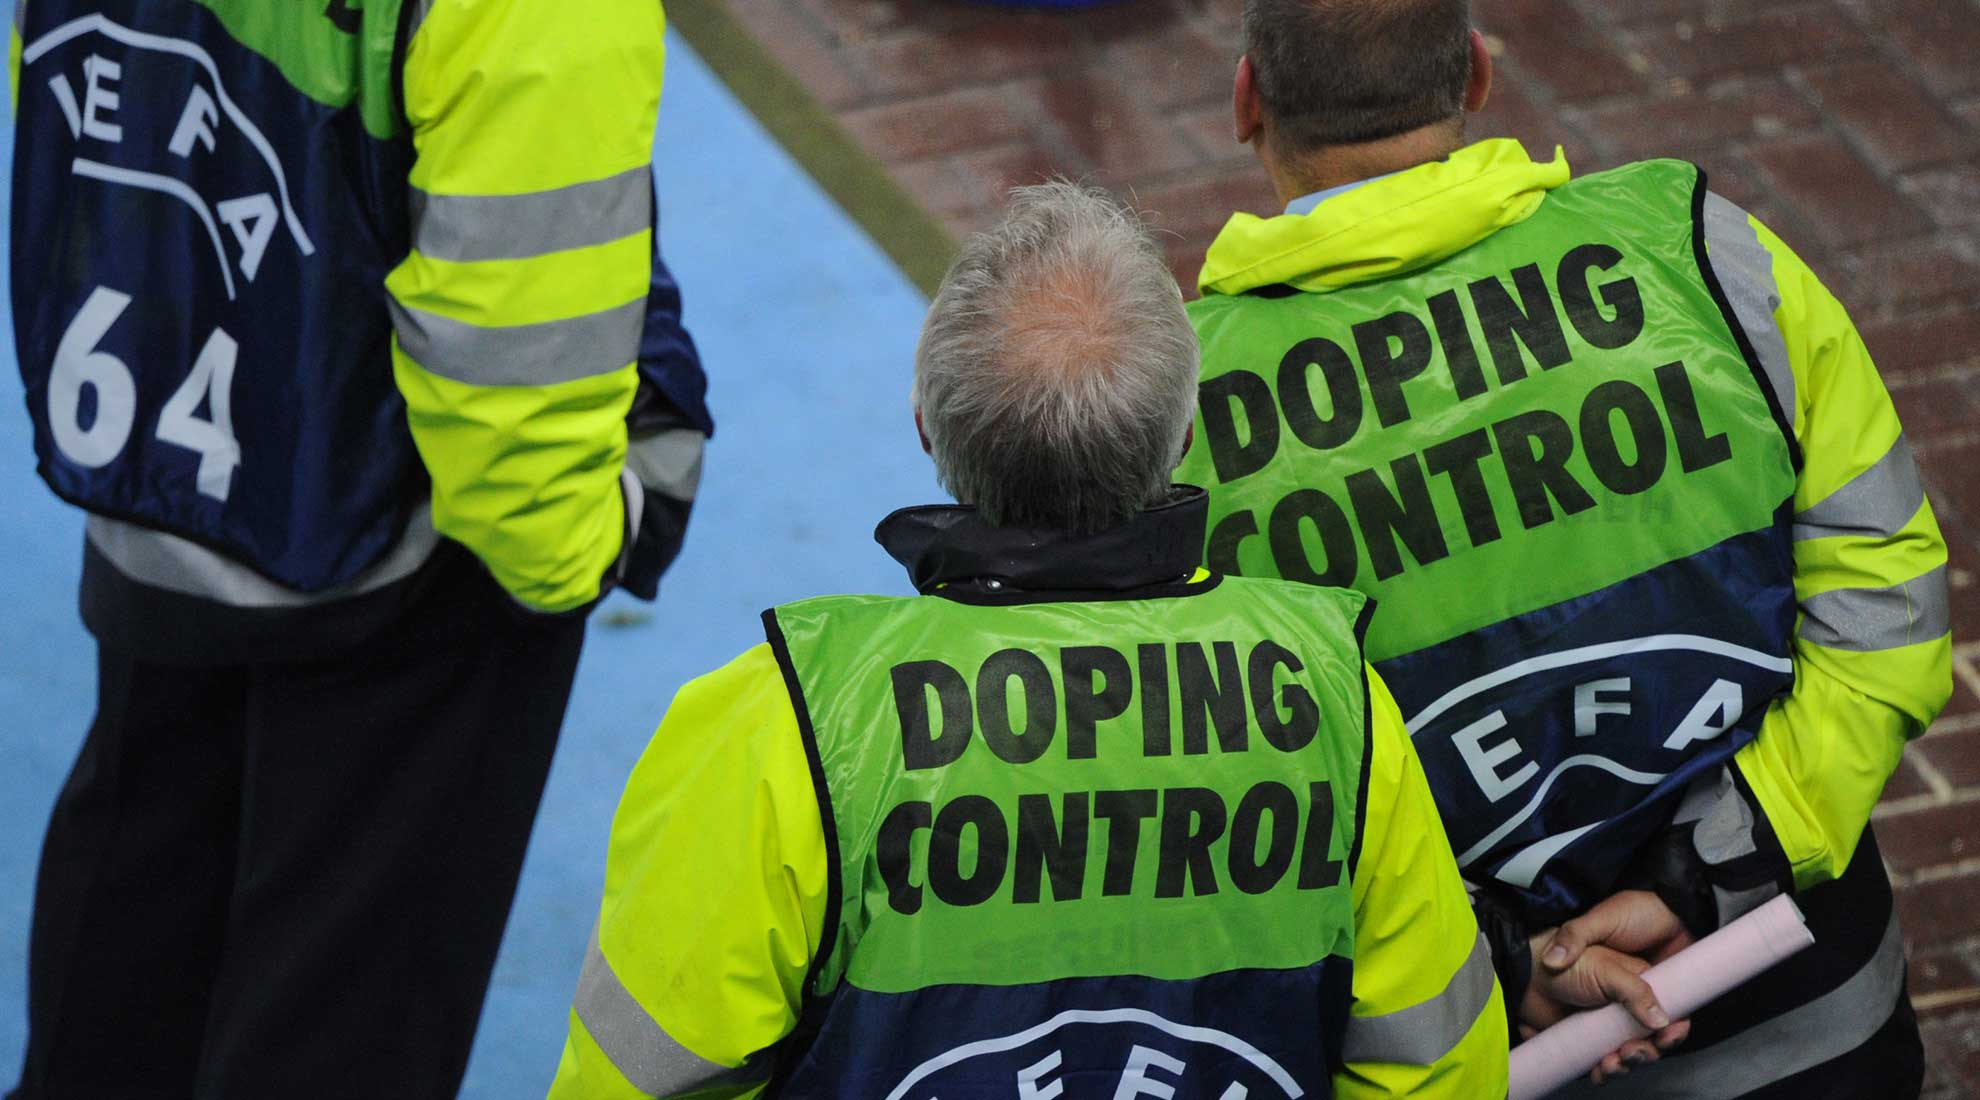 Control doping